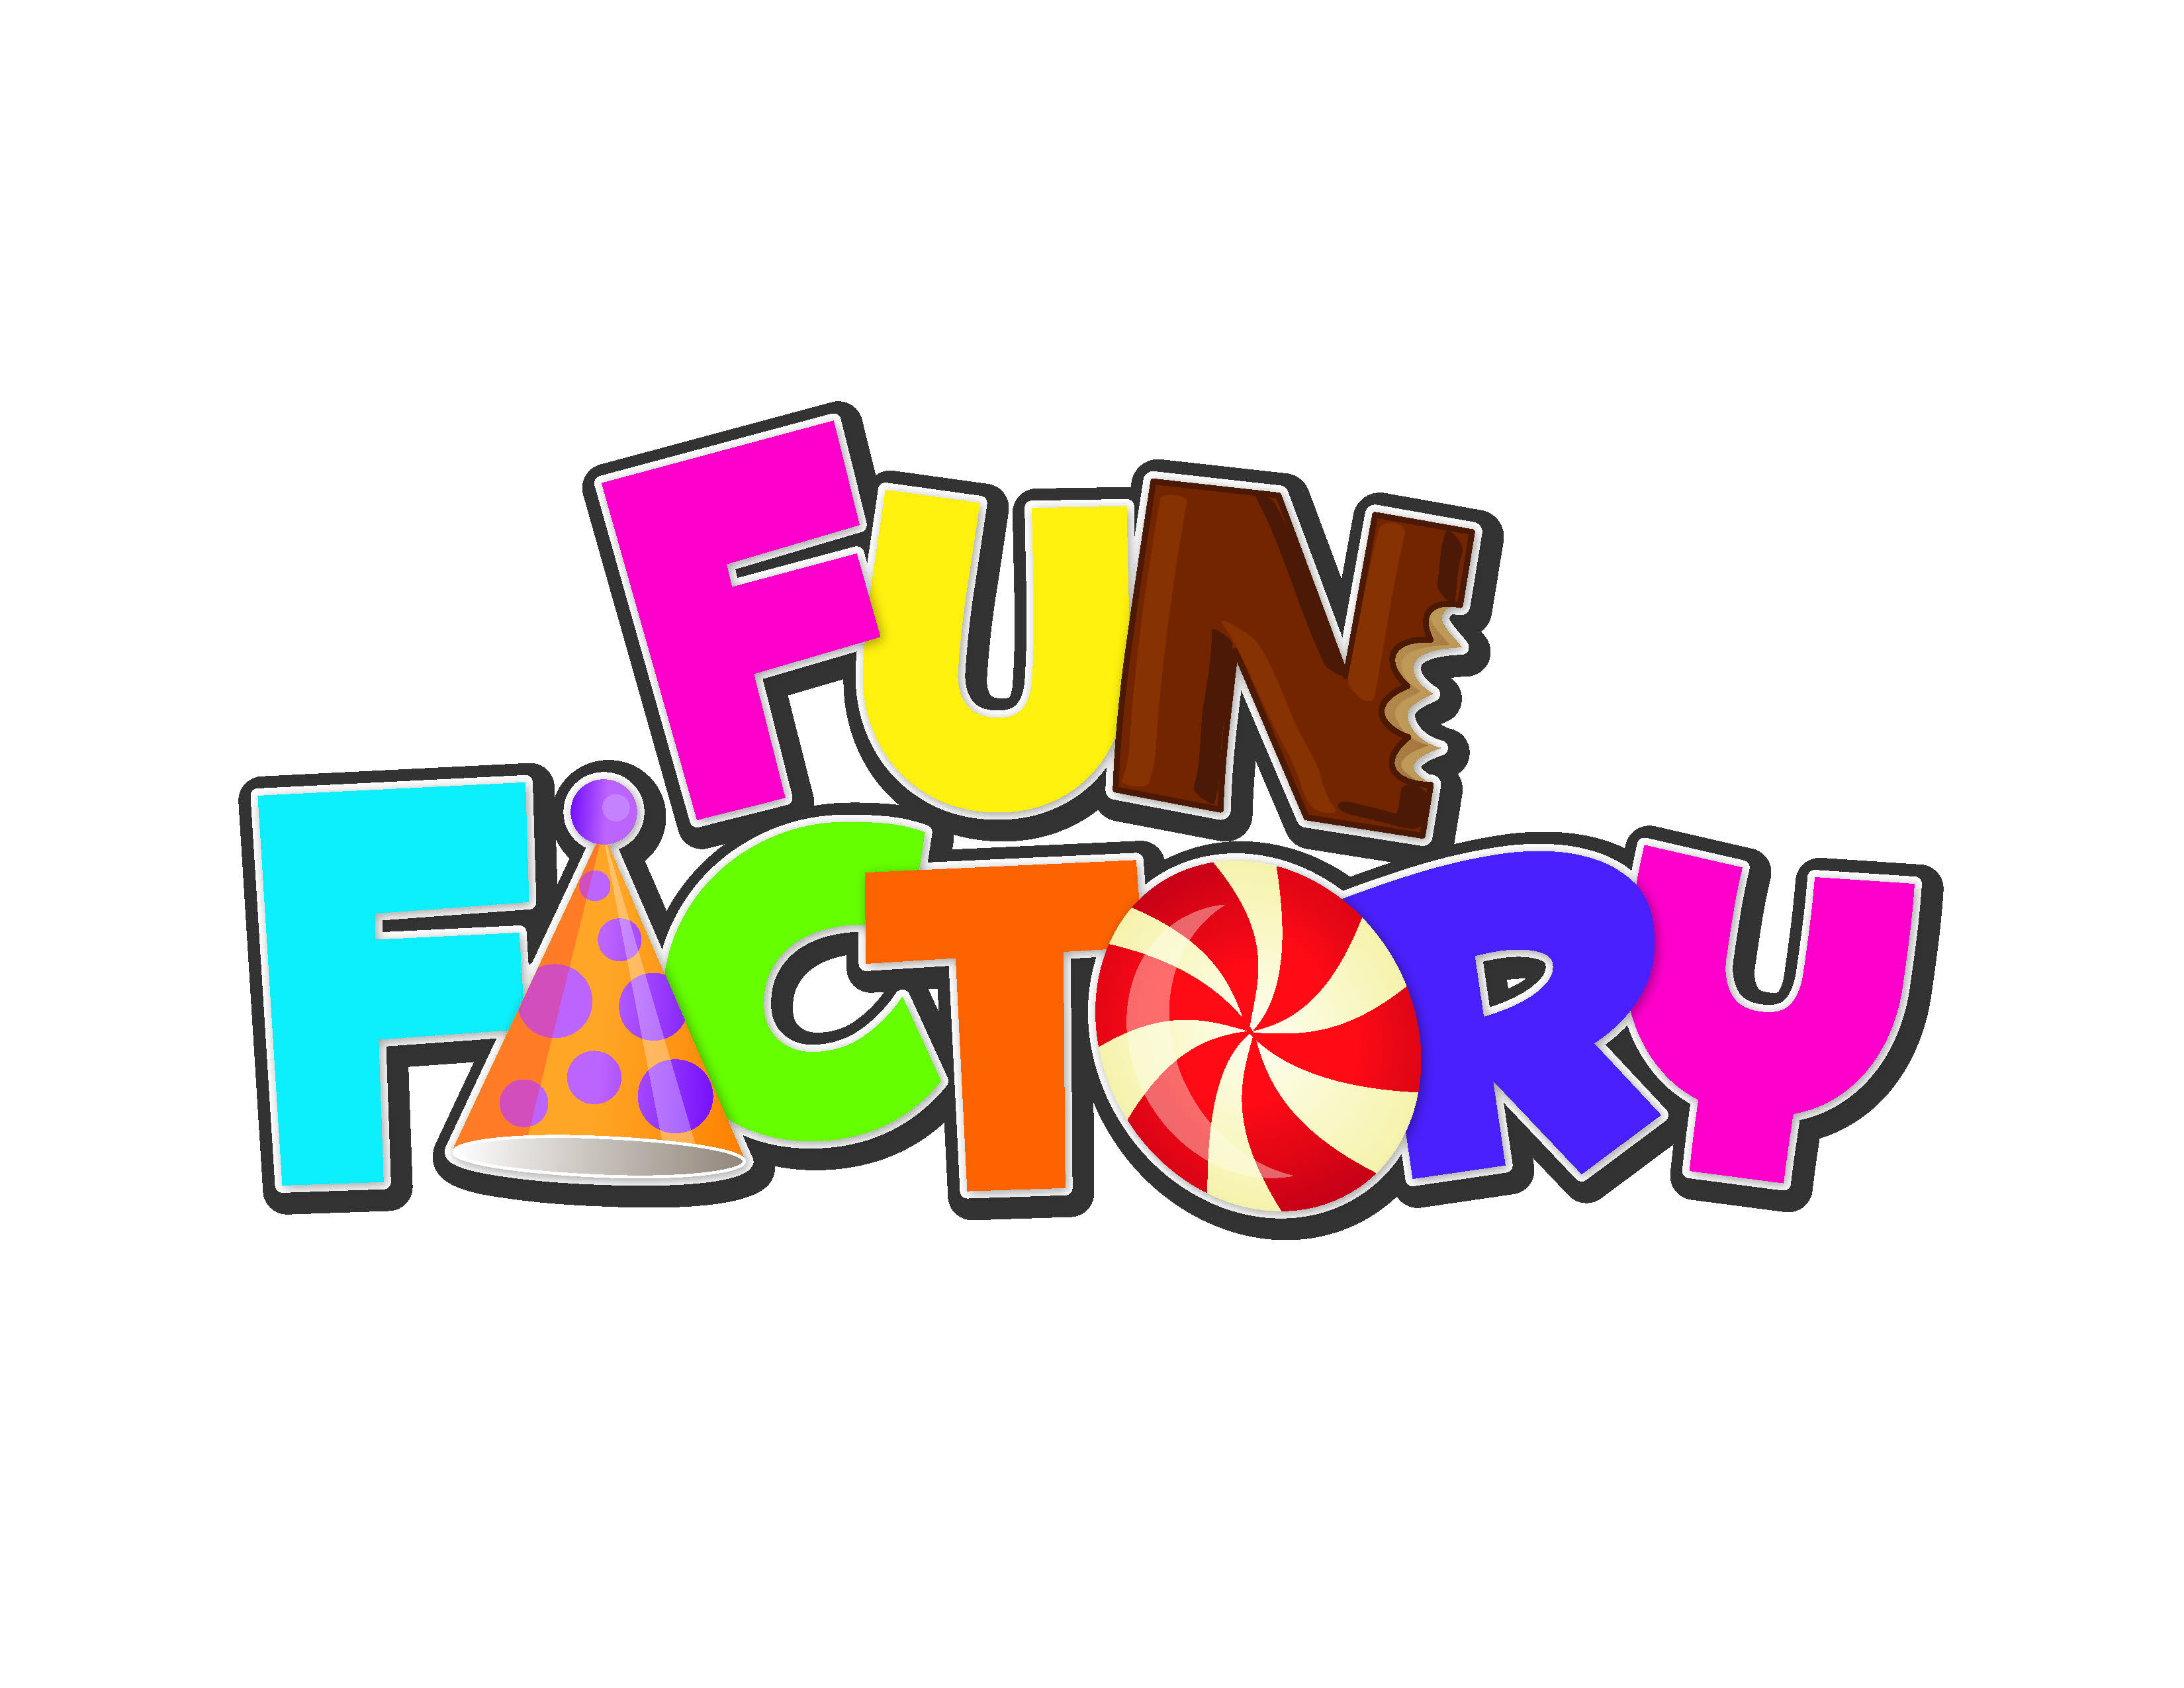 Fun logo clipart clipart images gallery for free download.